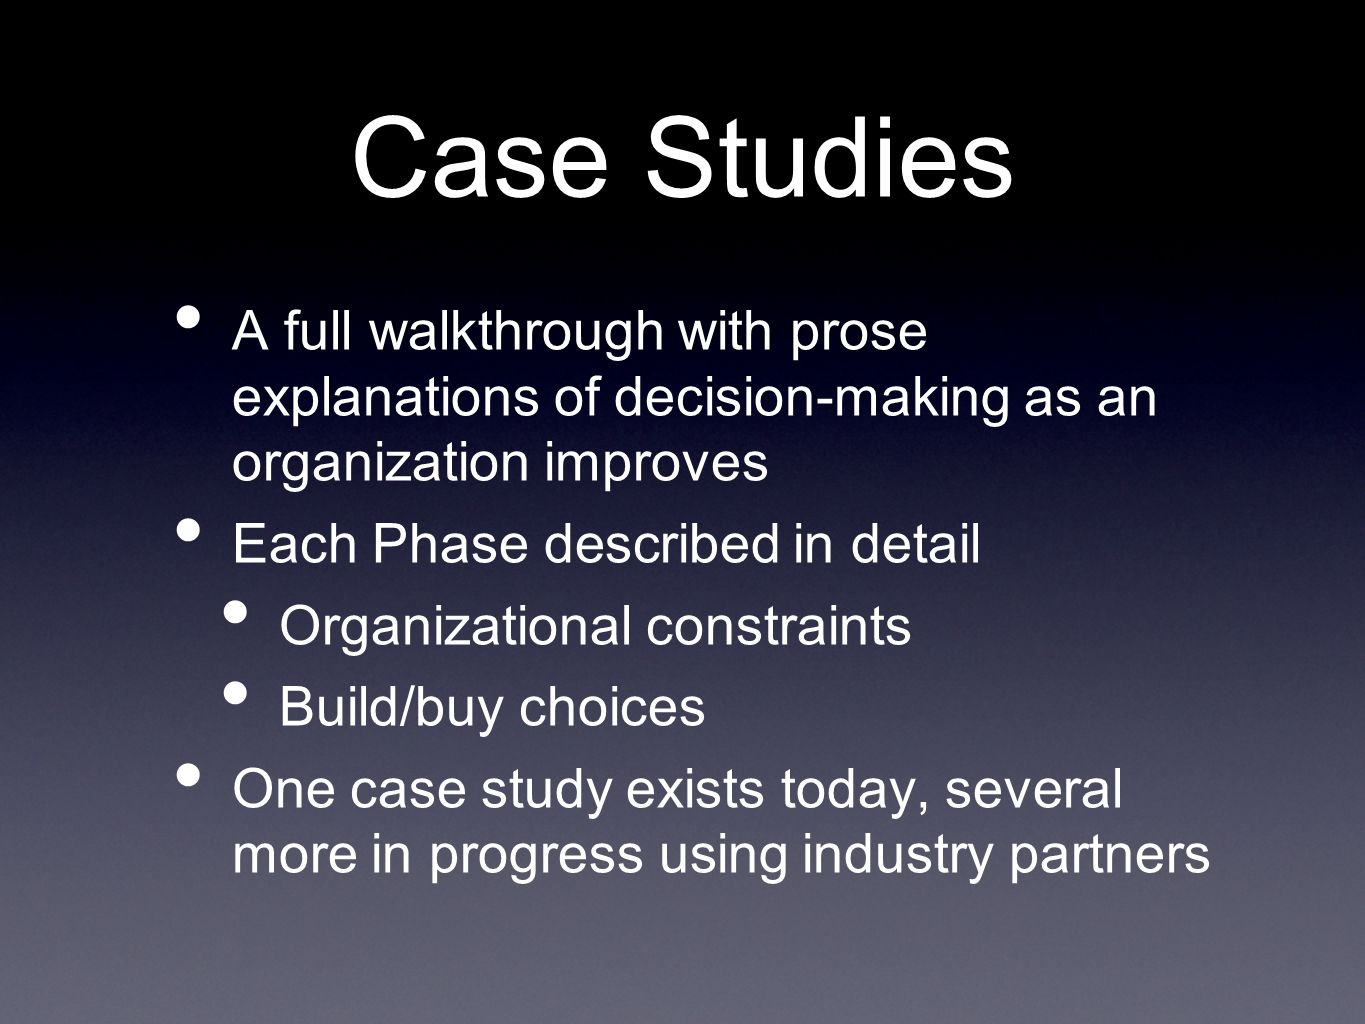 Case Studies A full walkthrough with prose explanations of decision-making as an organization improves.